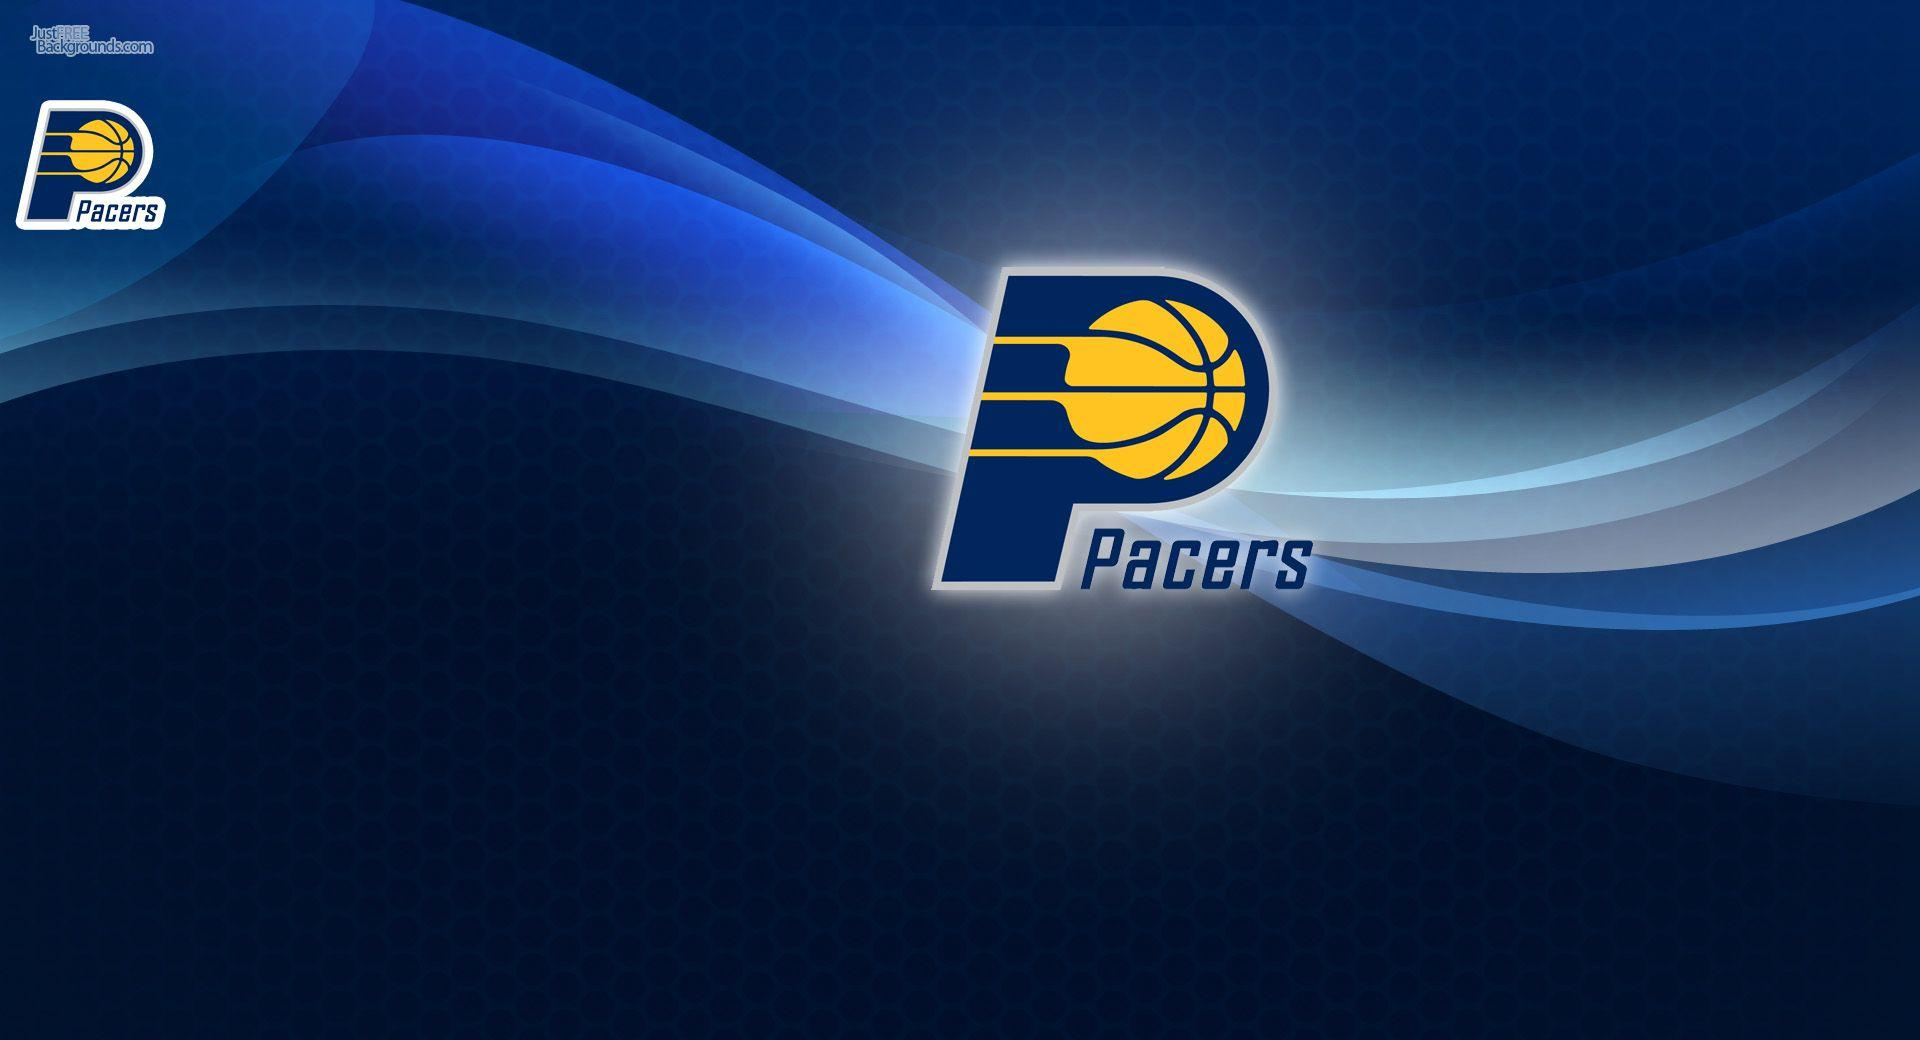 Top Wallpapers 2016: Free Pacers Wallpapers, Good Free Pacers ...